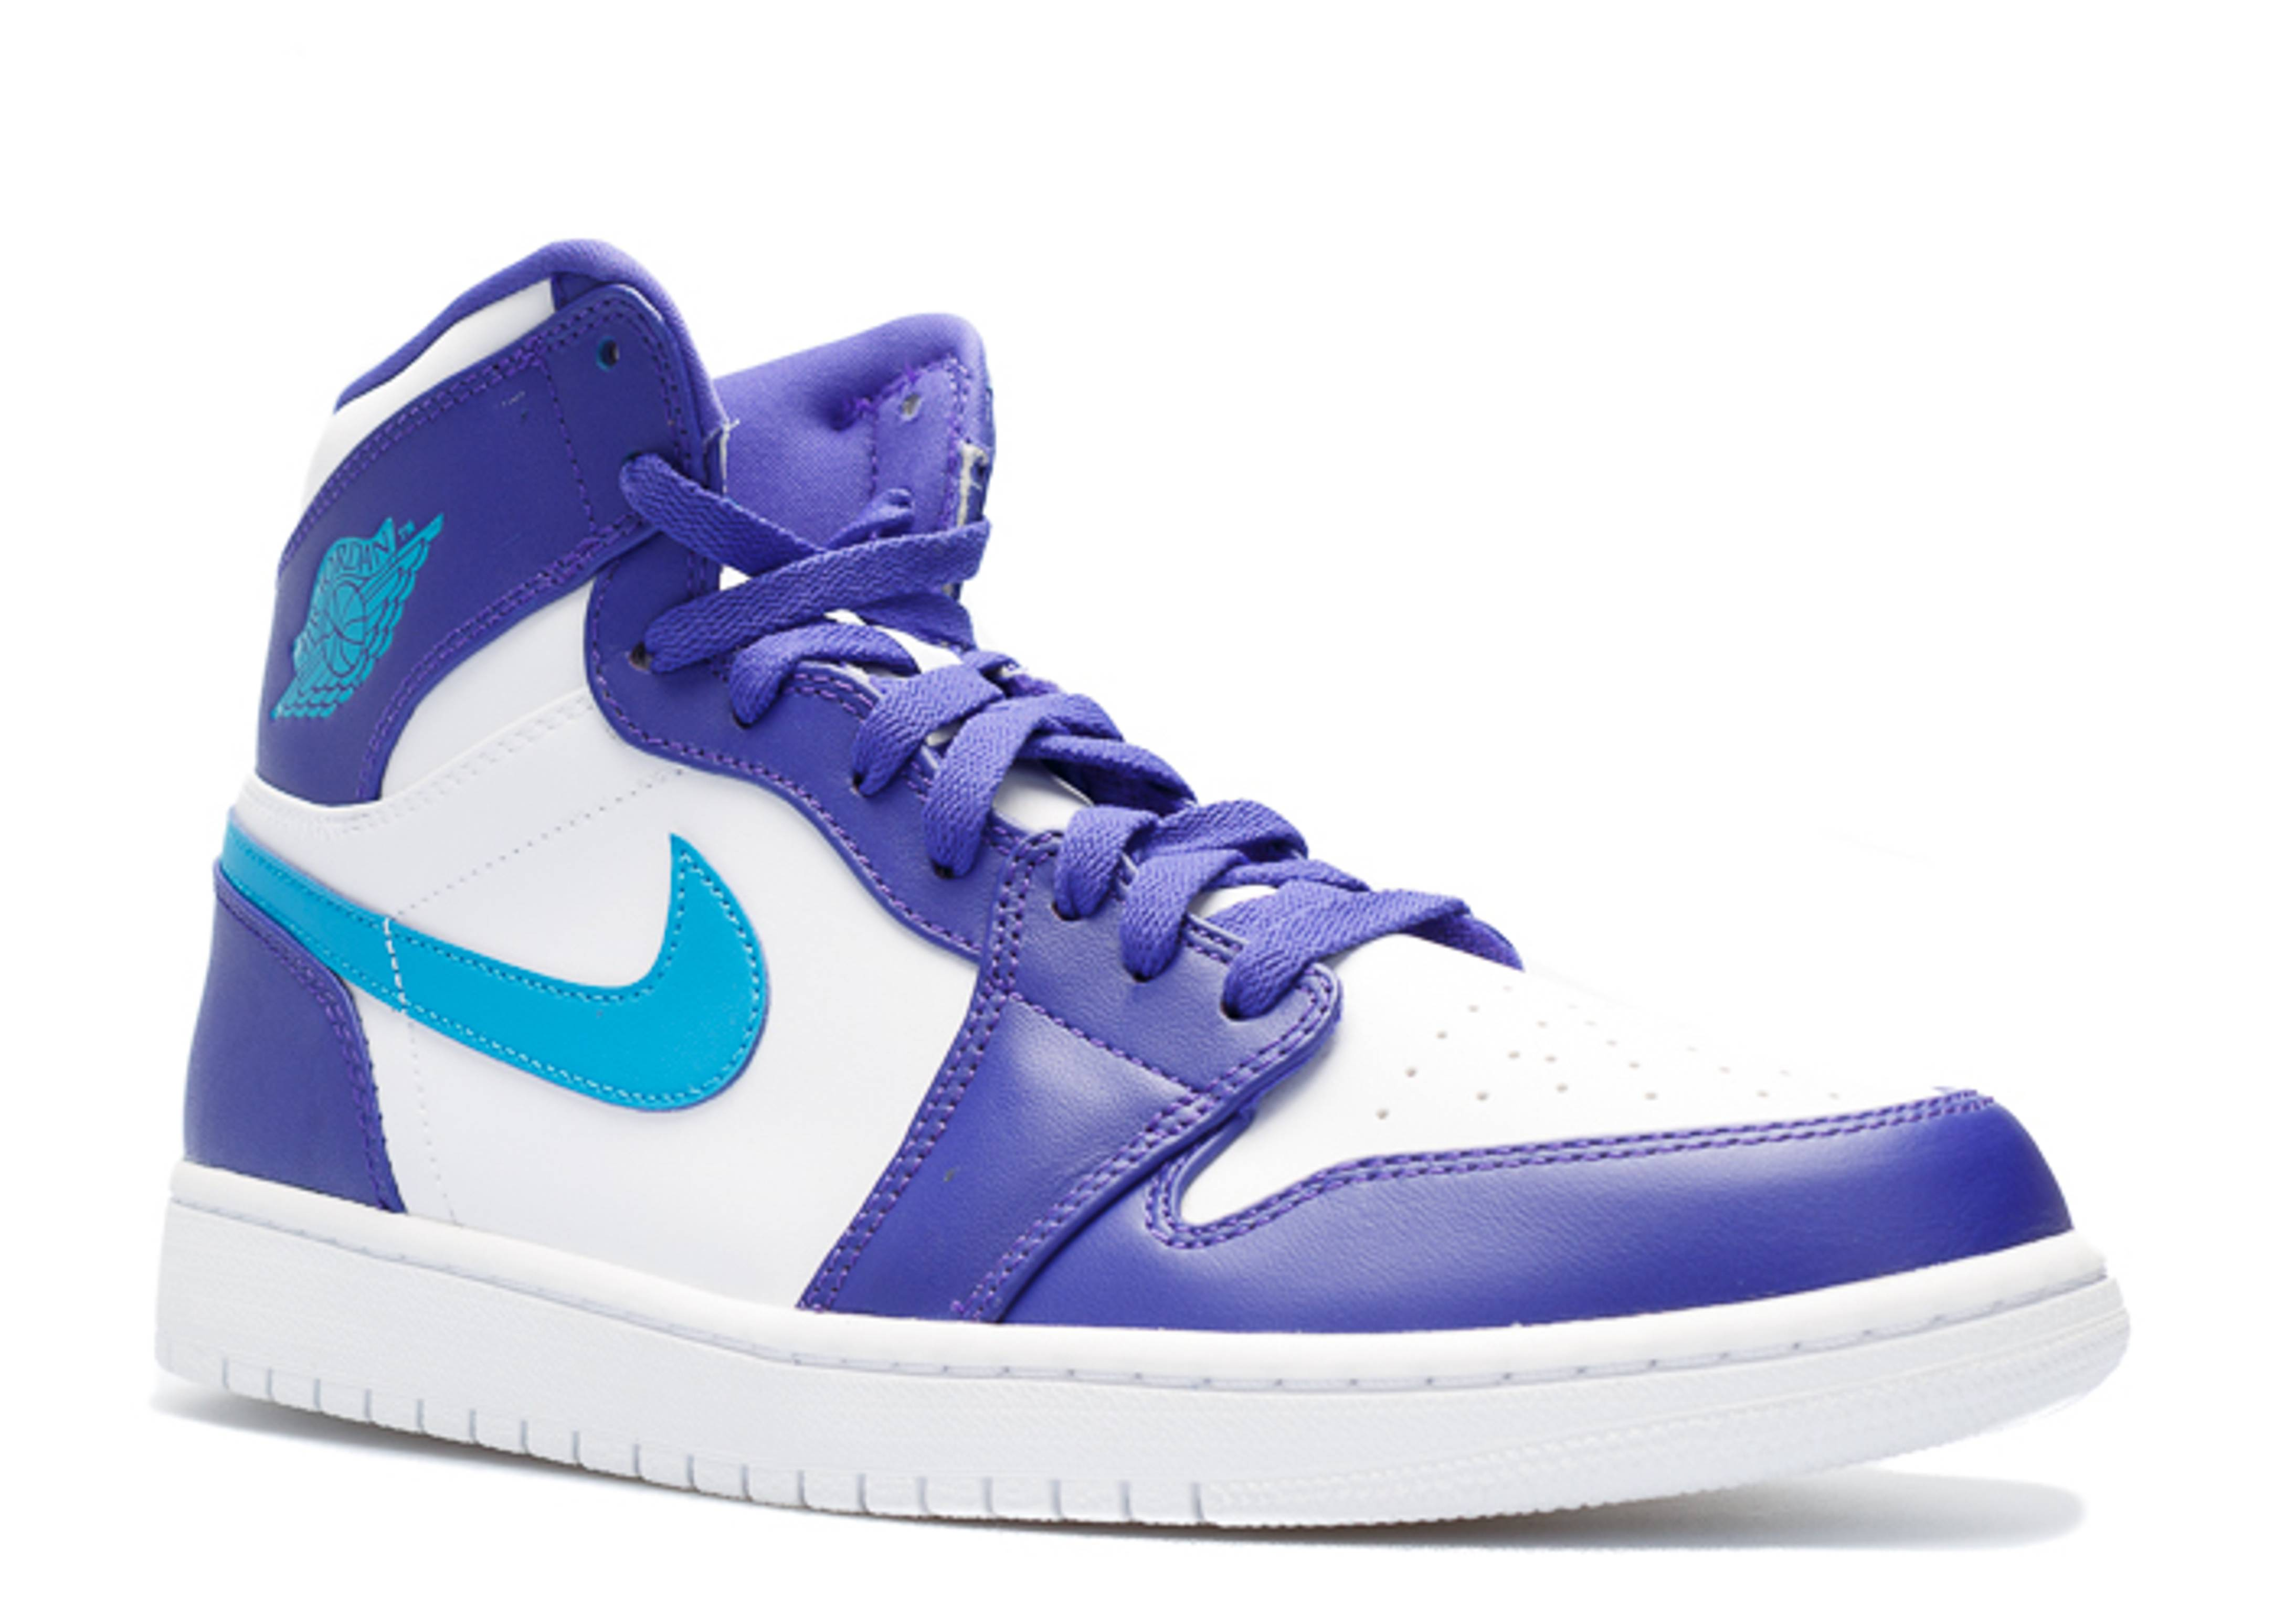 quality design 01d82 1bbf3 ... Blue 519601-474 Air Jordan 1 Retro High Air Jordan 1 High Feng Shui Air  ...